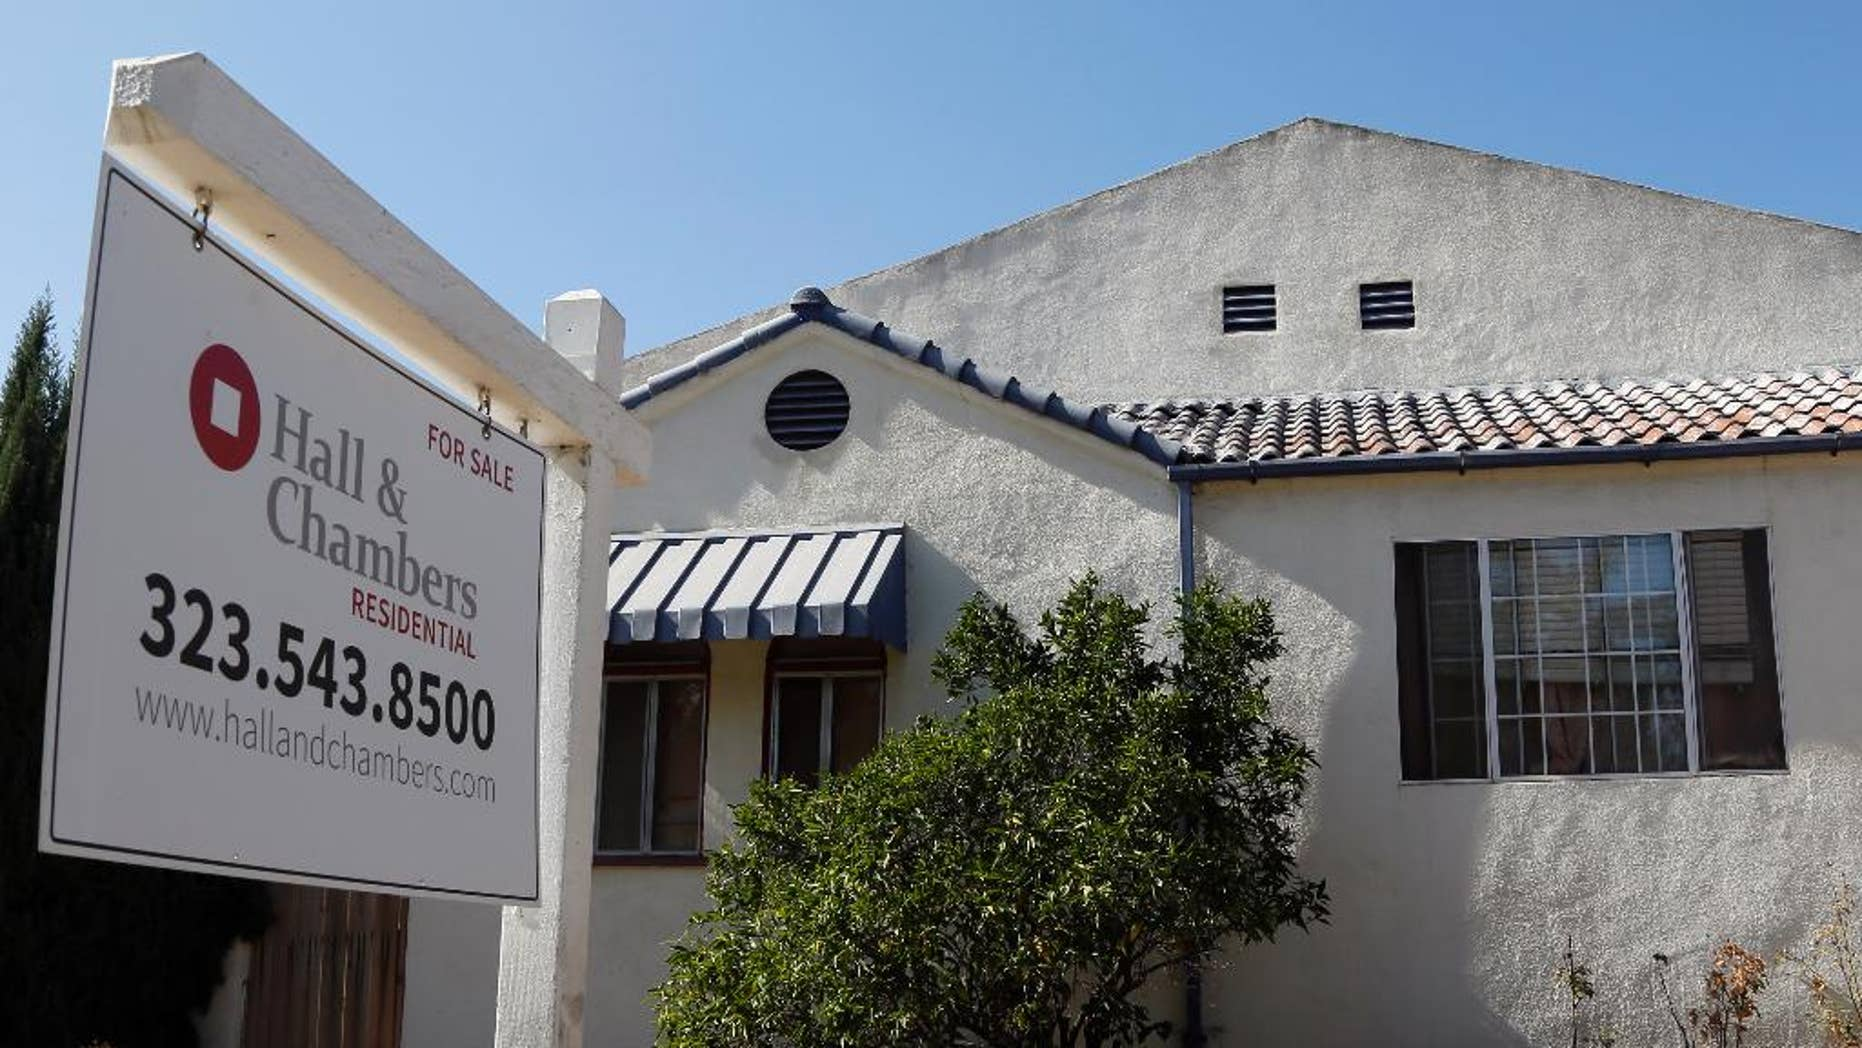 A realty sign hangs outside a home for sale in Los Angeles Monday, Oct 27, 2014. Standard & Poor's releases its 20-city home price index for August on Tuesday, Oct. 28, 2014. (AP Photo/Nick Ut)